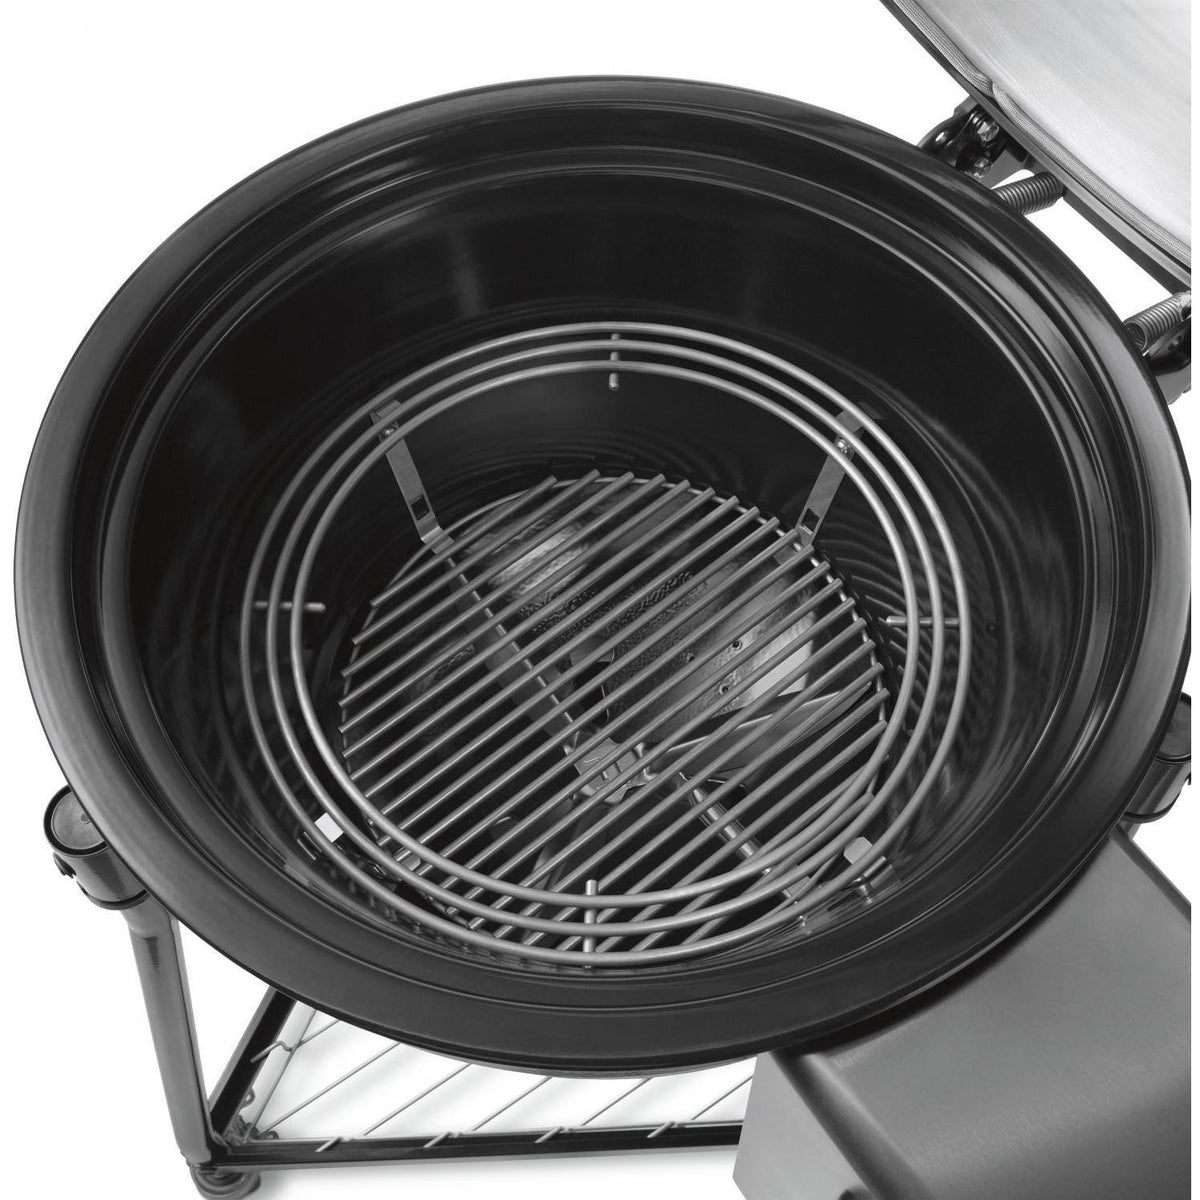 Weber Summit 24-Inch Charcoal Grilling Center - Black (Luxury Grill)